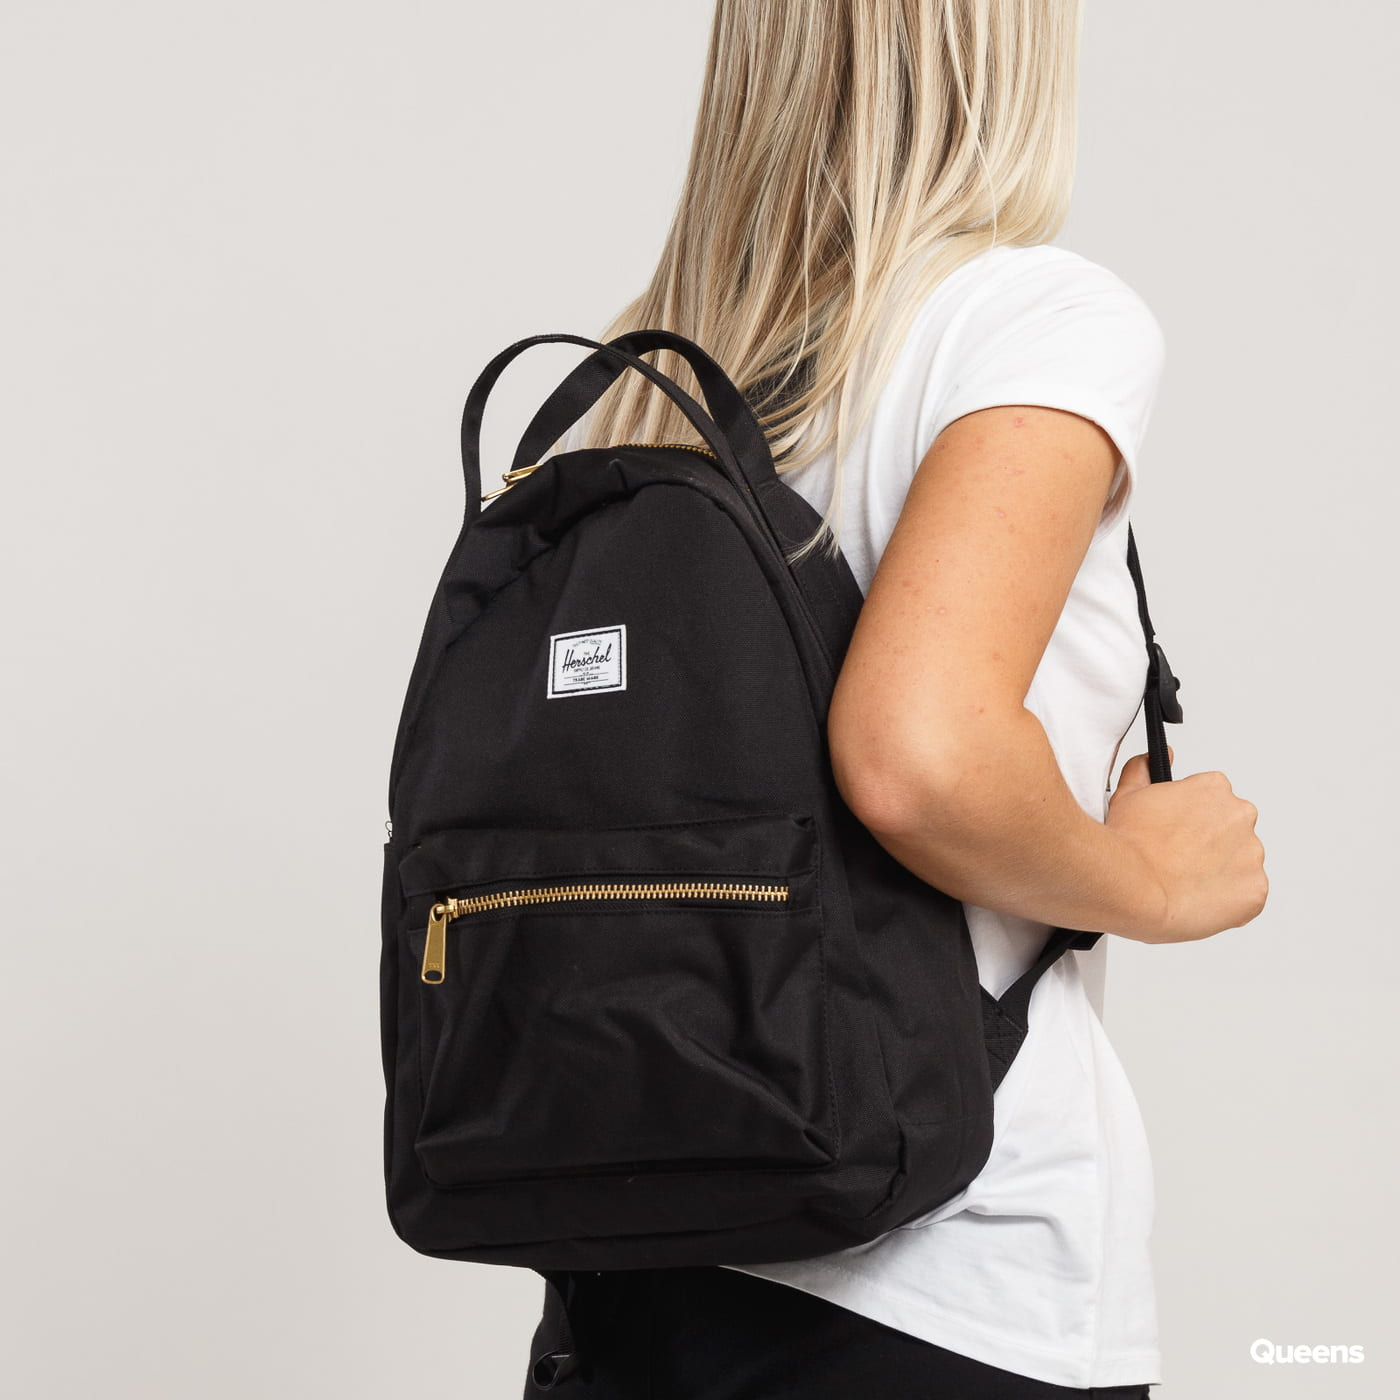 The Herschel Supply CO. Nova Small Backpack black